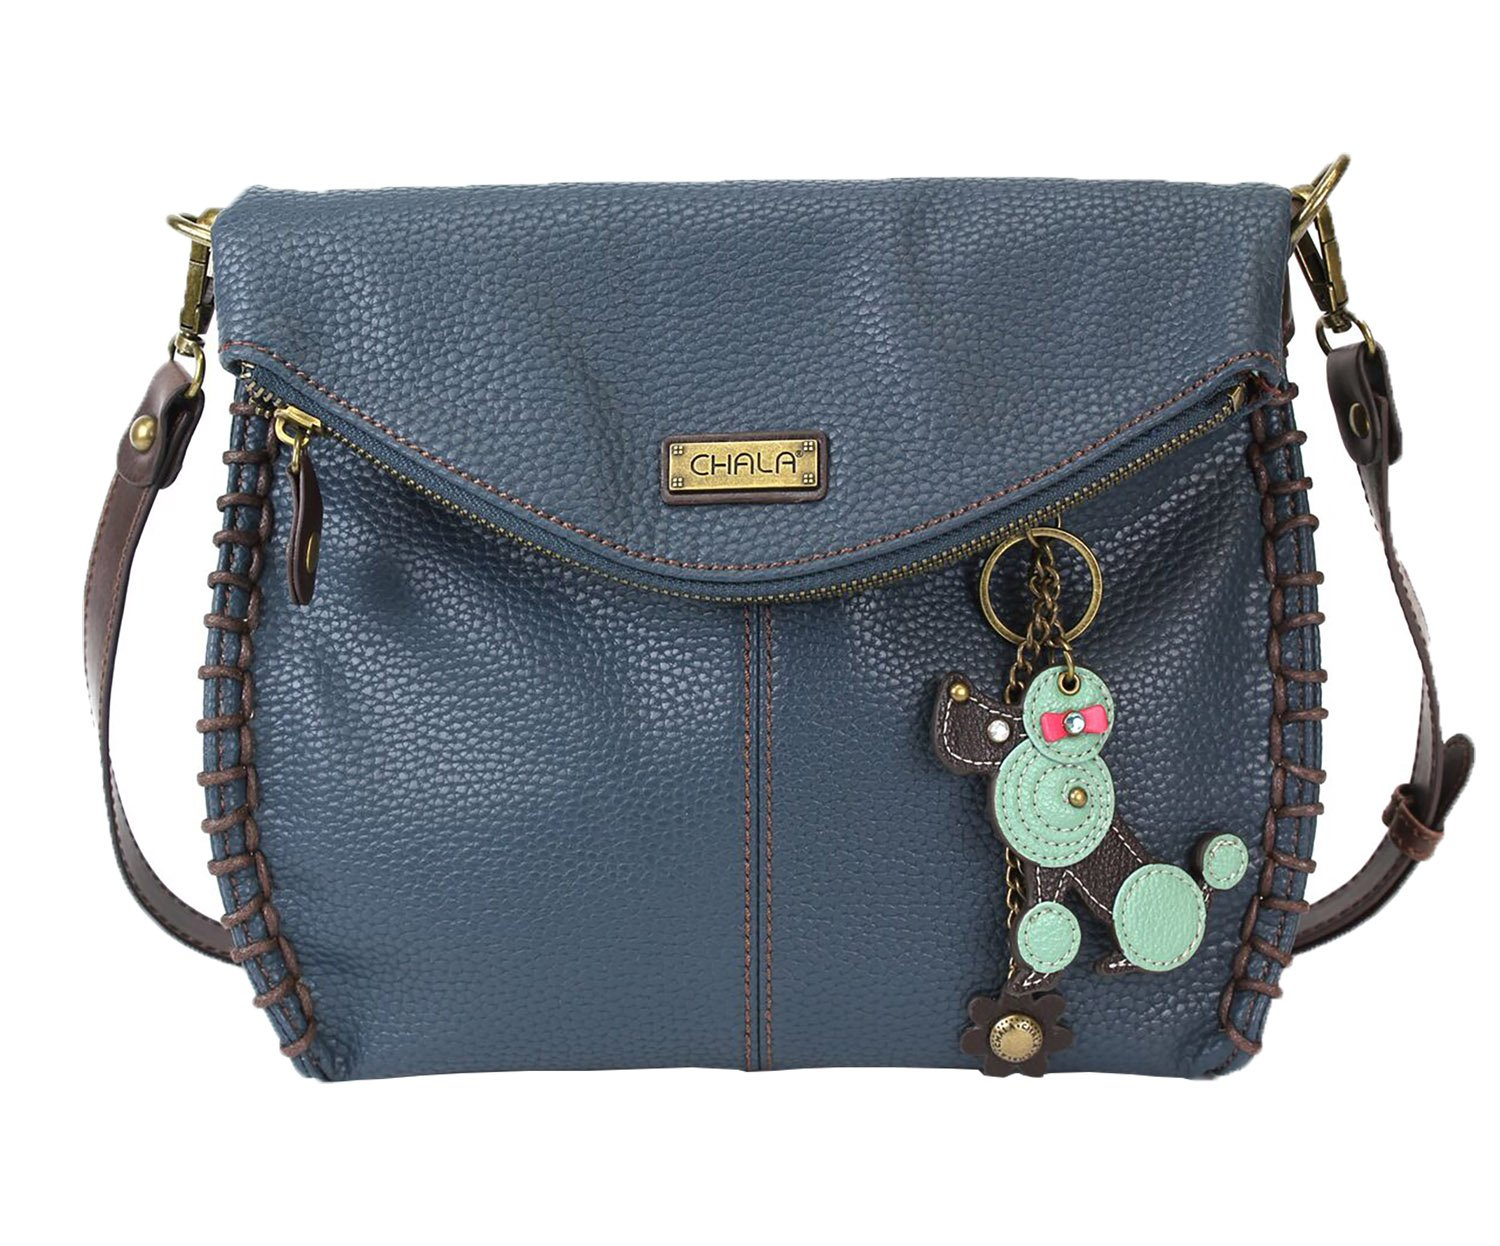 Chala Charming Crossbody Bag - Flap Top and Metal Key Charm in Navy Blue, Cross-Body or Shoulder Purse - Poodle